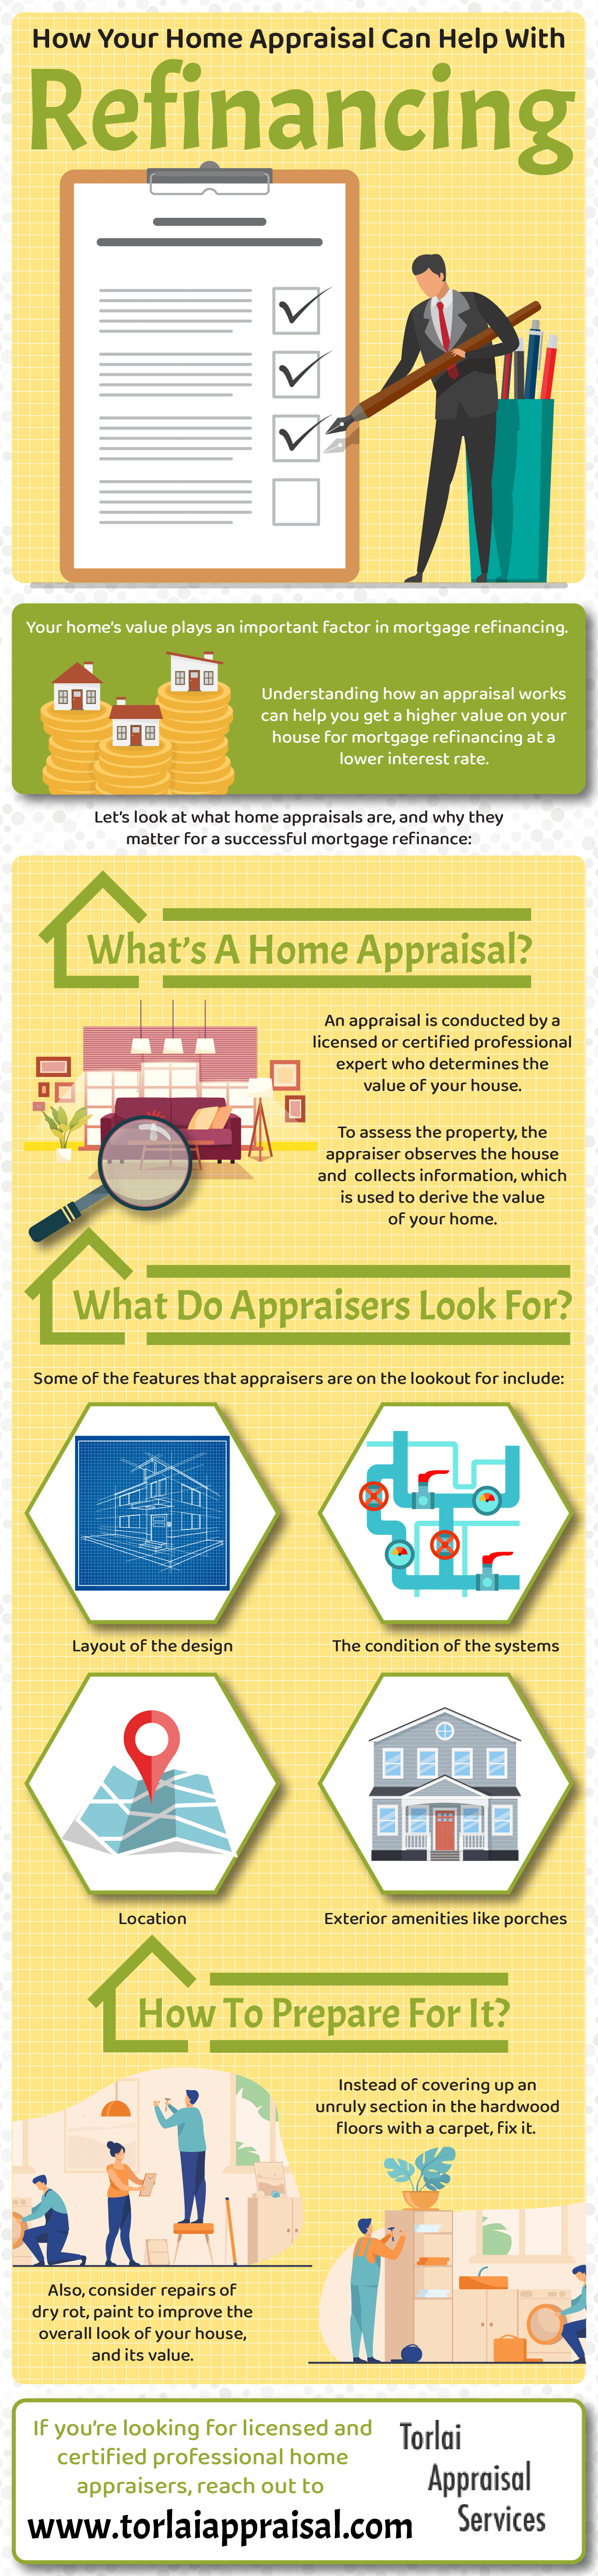 how home appraisal can help with refinancing